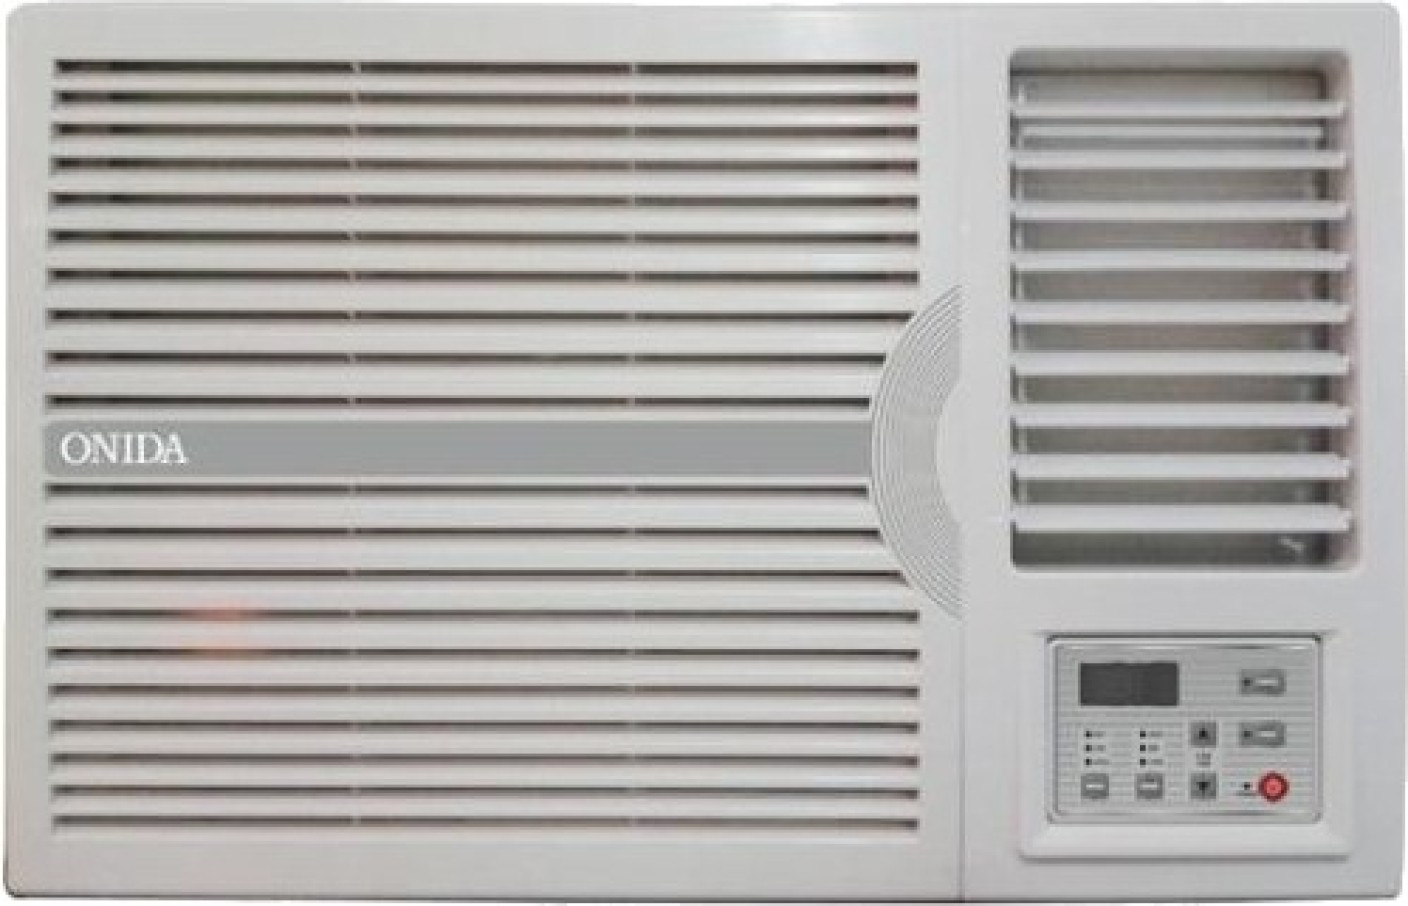 Buy onida 1 5 ton 3 star bee rating 2017 for 1 5 ton window ac price india